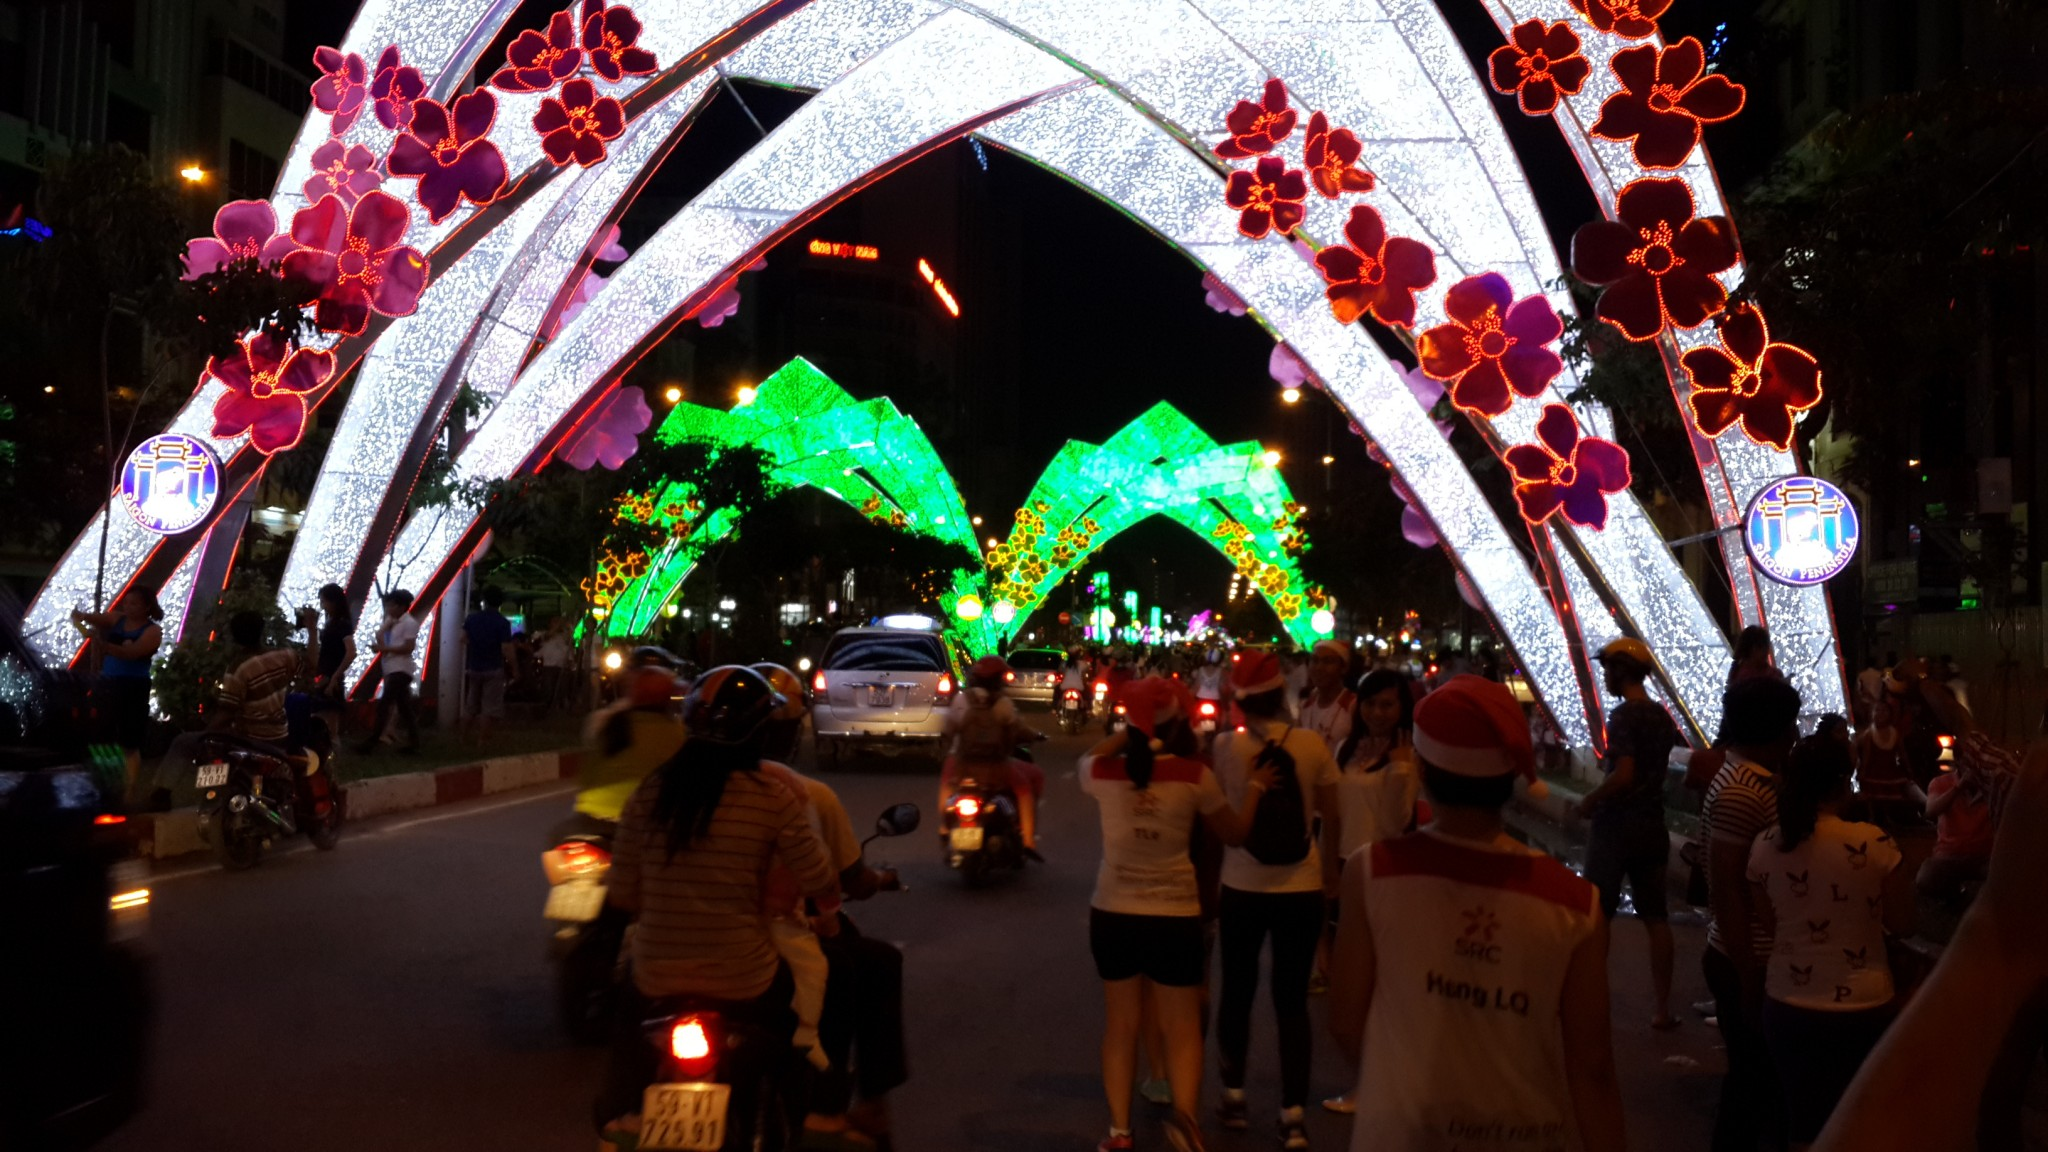 A night out with the Sunday Running Club (folks in the Santa hats) delivering sweets to kids in Ho Chi Minh.